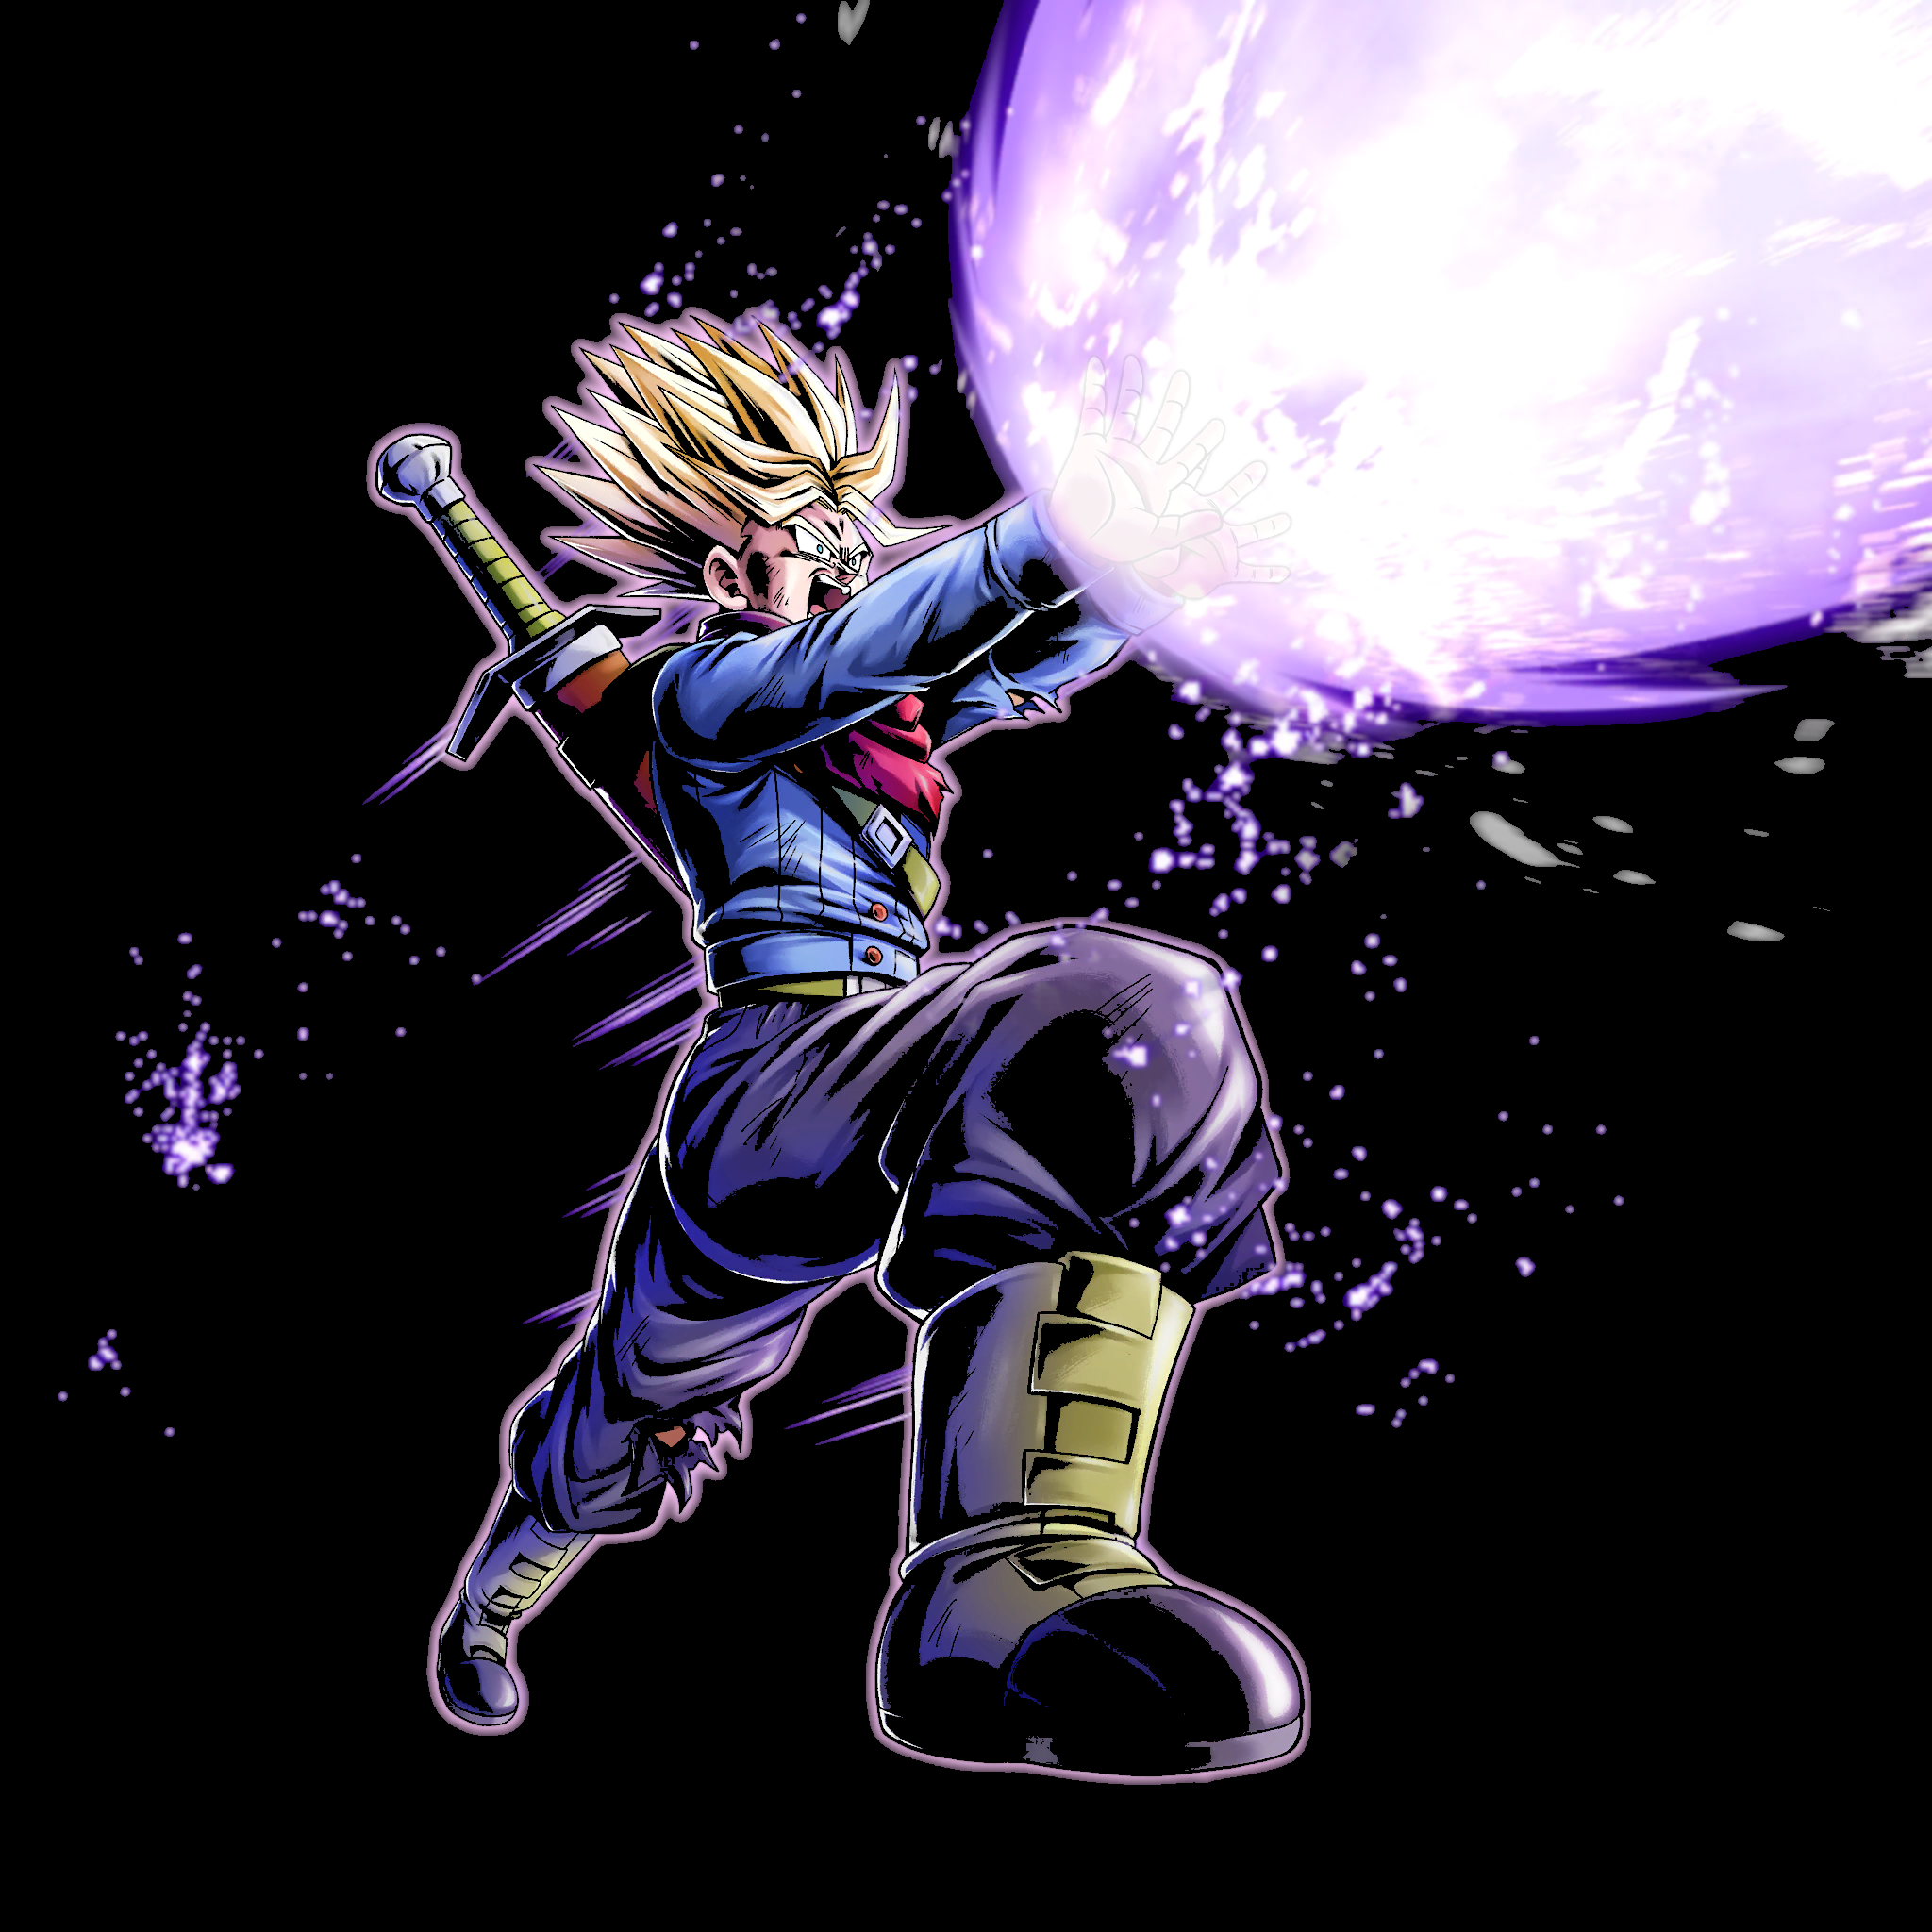 Trunks Super Saiyan Rage 2993643 Hd Wallpaper Backgrounds Download